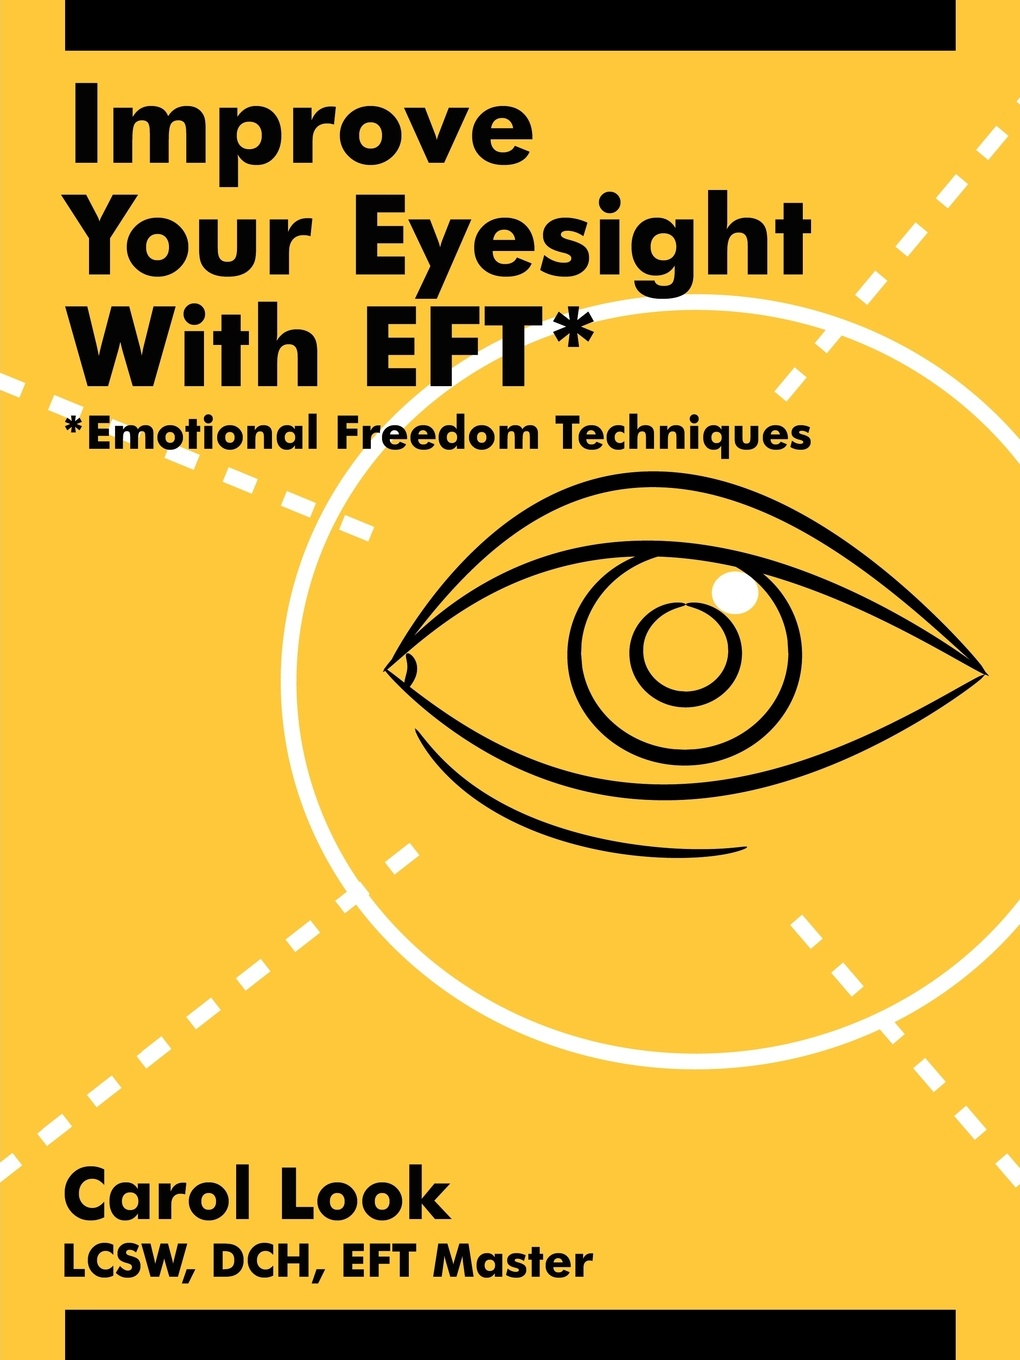 Carol Look Improve Your Eyesight with Eft*. *Emotional Freedom Techniques paul lynch emotional healing in minutes simple acupressure techniques for your emotions